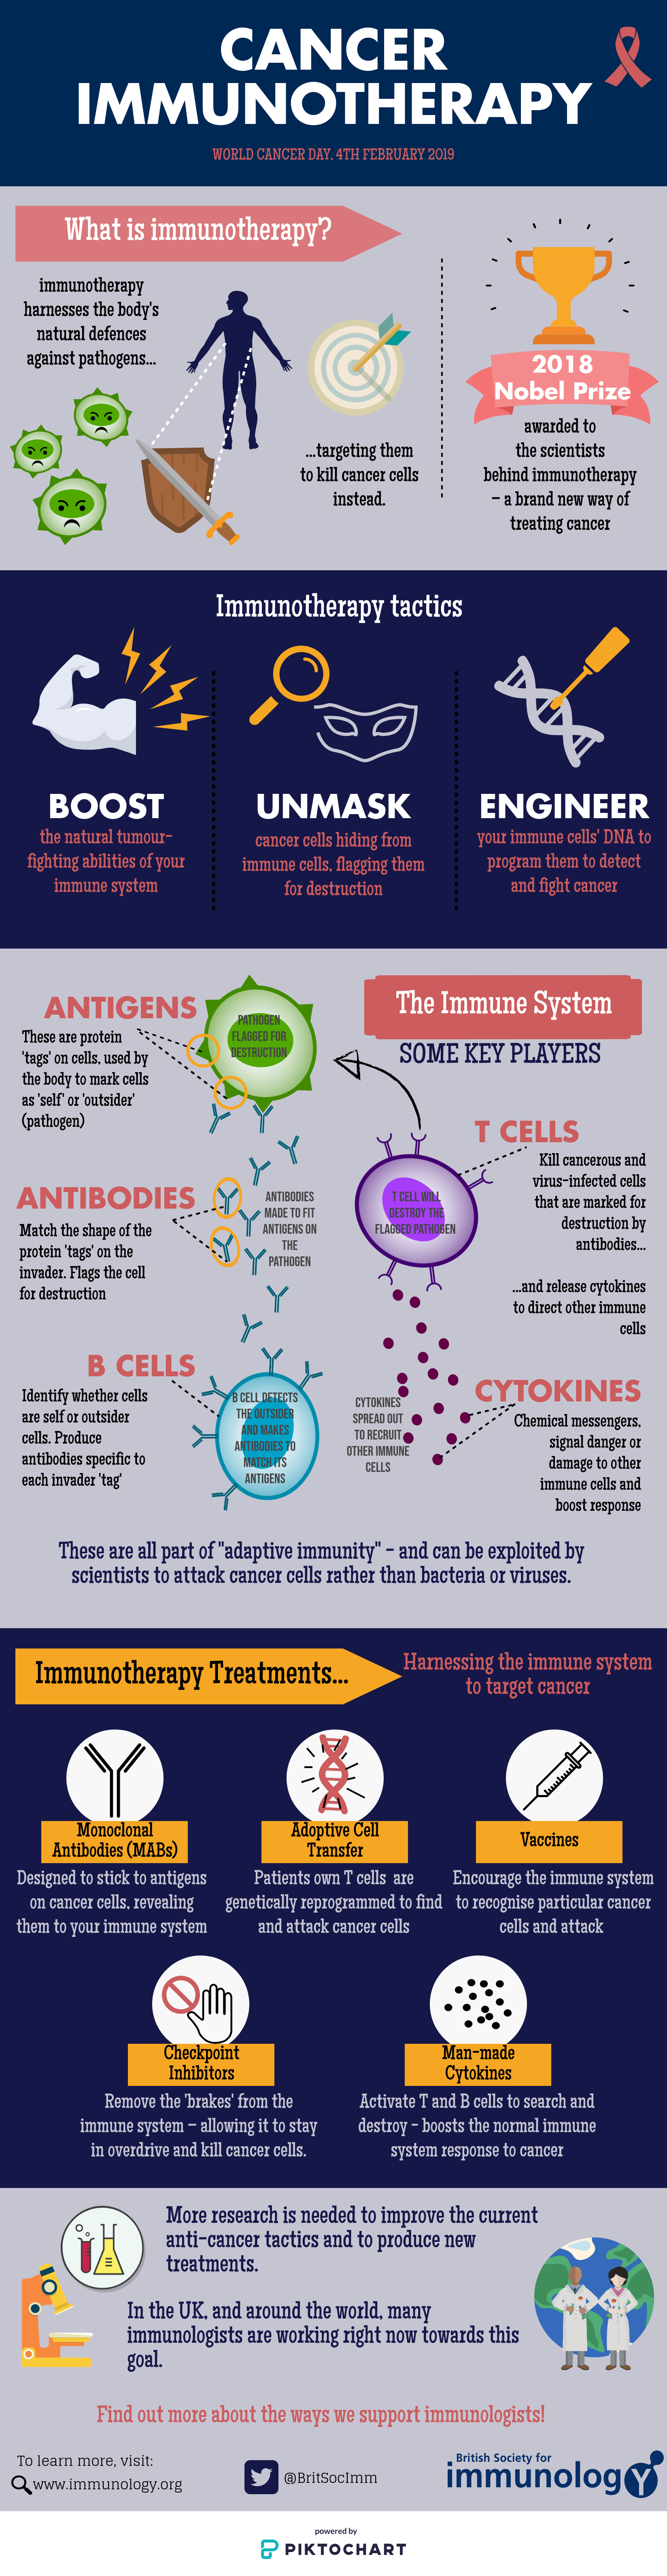 Cancer Immunotherapy Infographic for World Cancer Day 2019 from the British Society for Immunology (BSI)